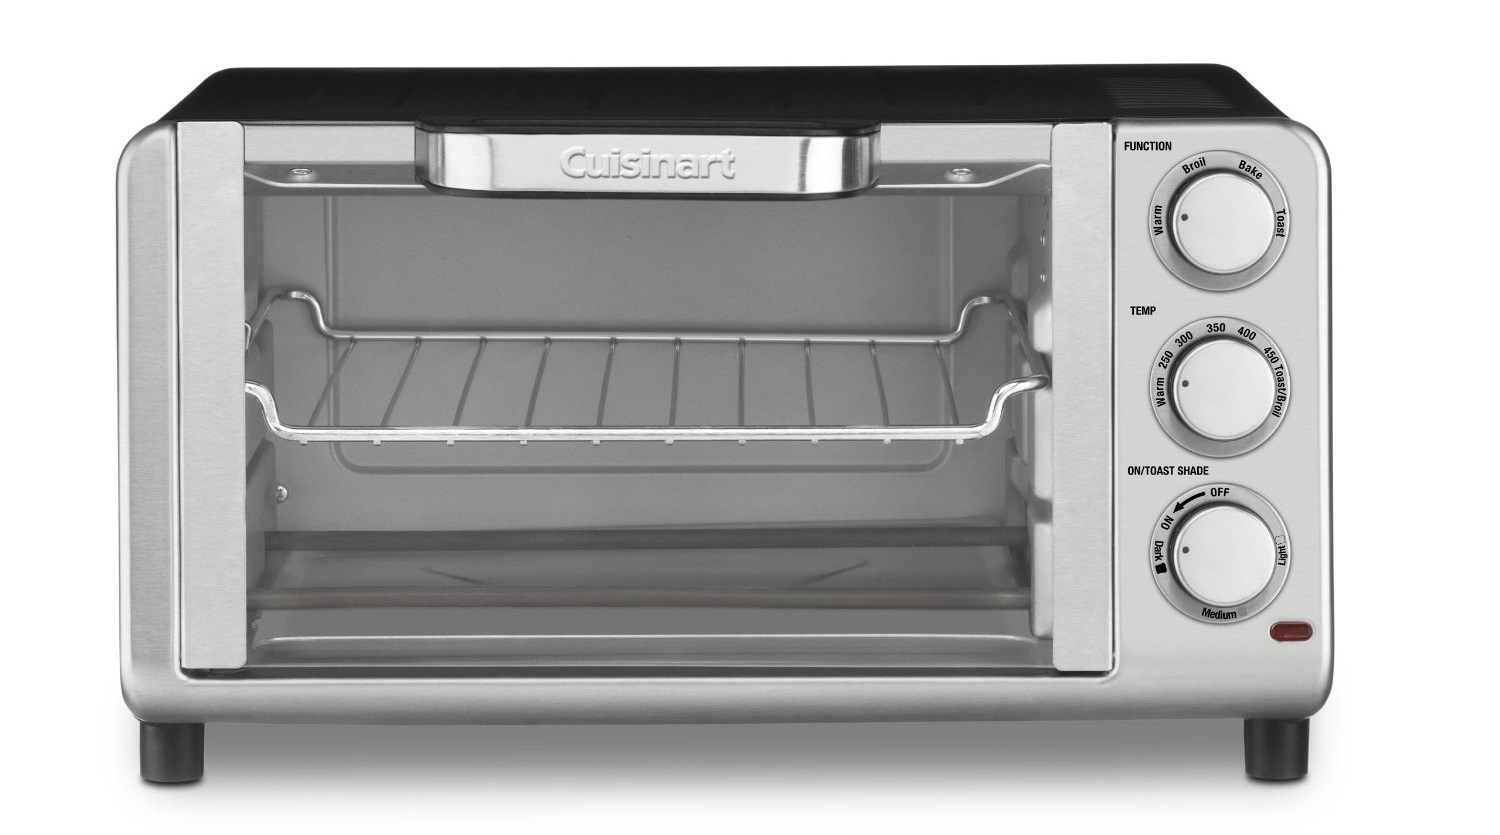 reviewis gourmet with toaster convection uncategorized countertop worth cuisinart oven it files of styles unbelievable accessories wolf broiler ideas and